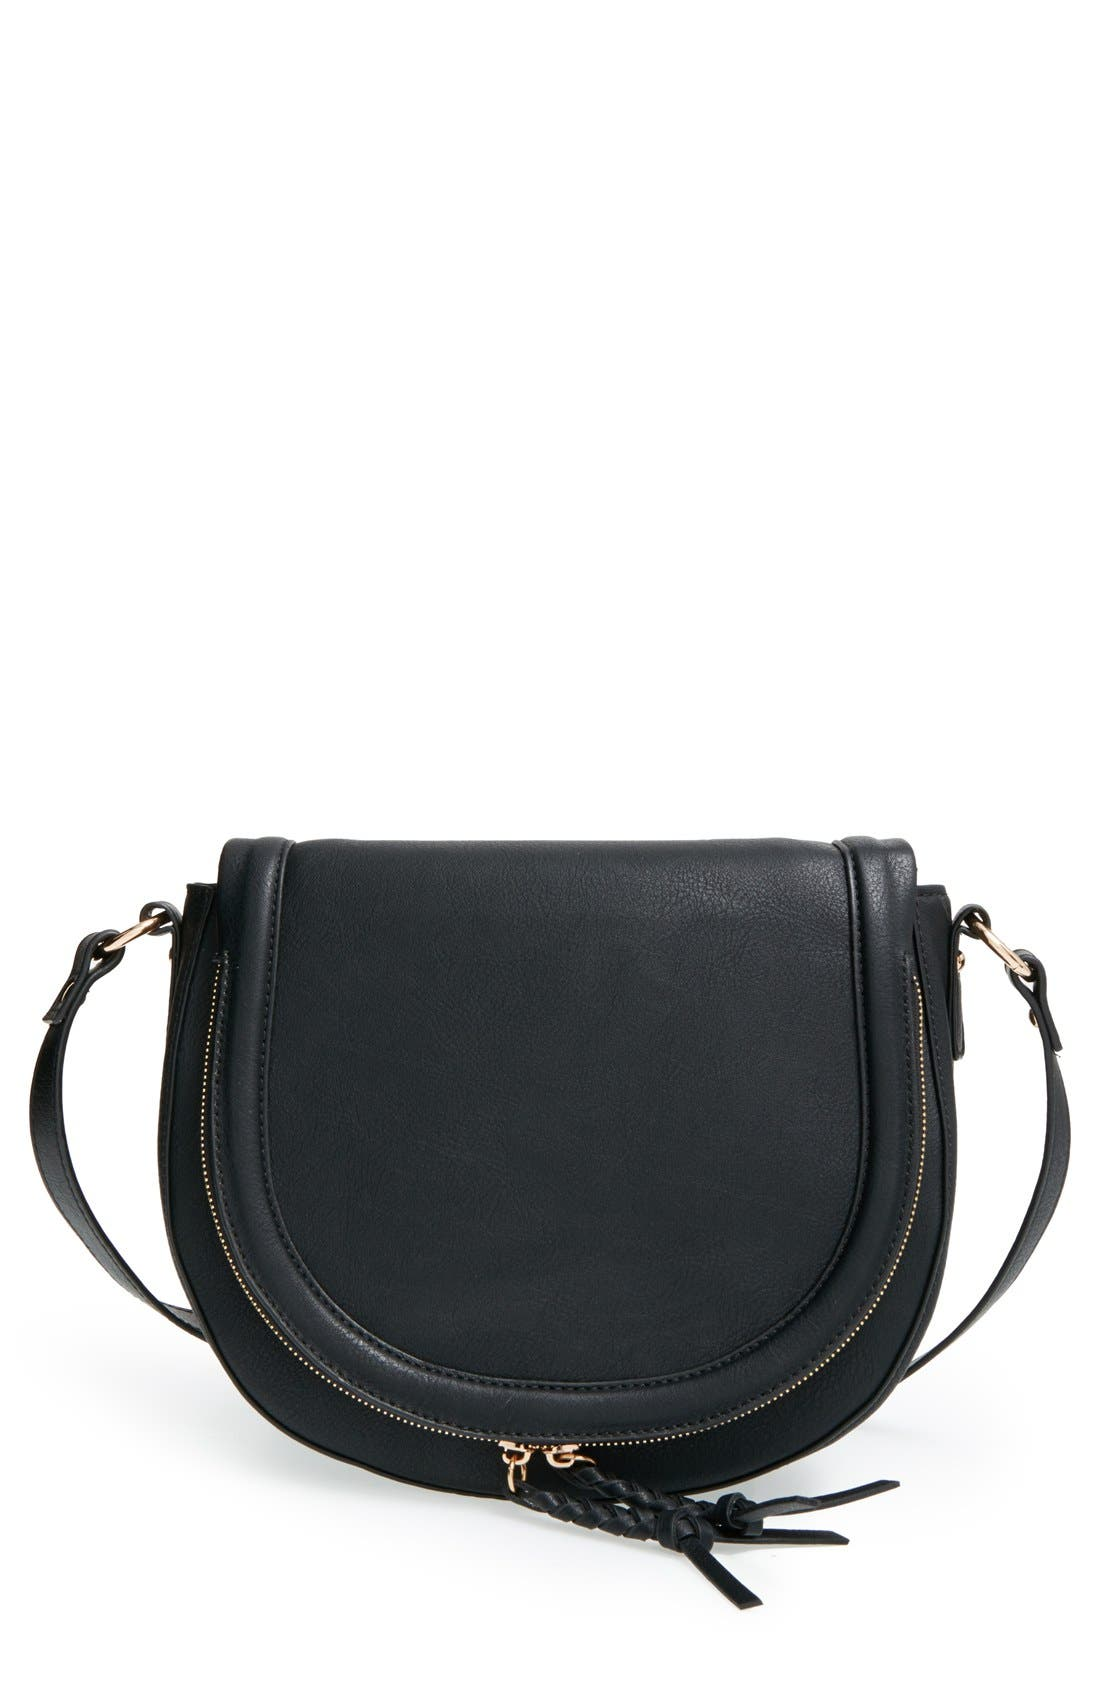 Main Image - Sole Society 'Thalia' Crossbody Bag